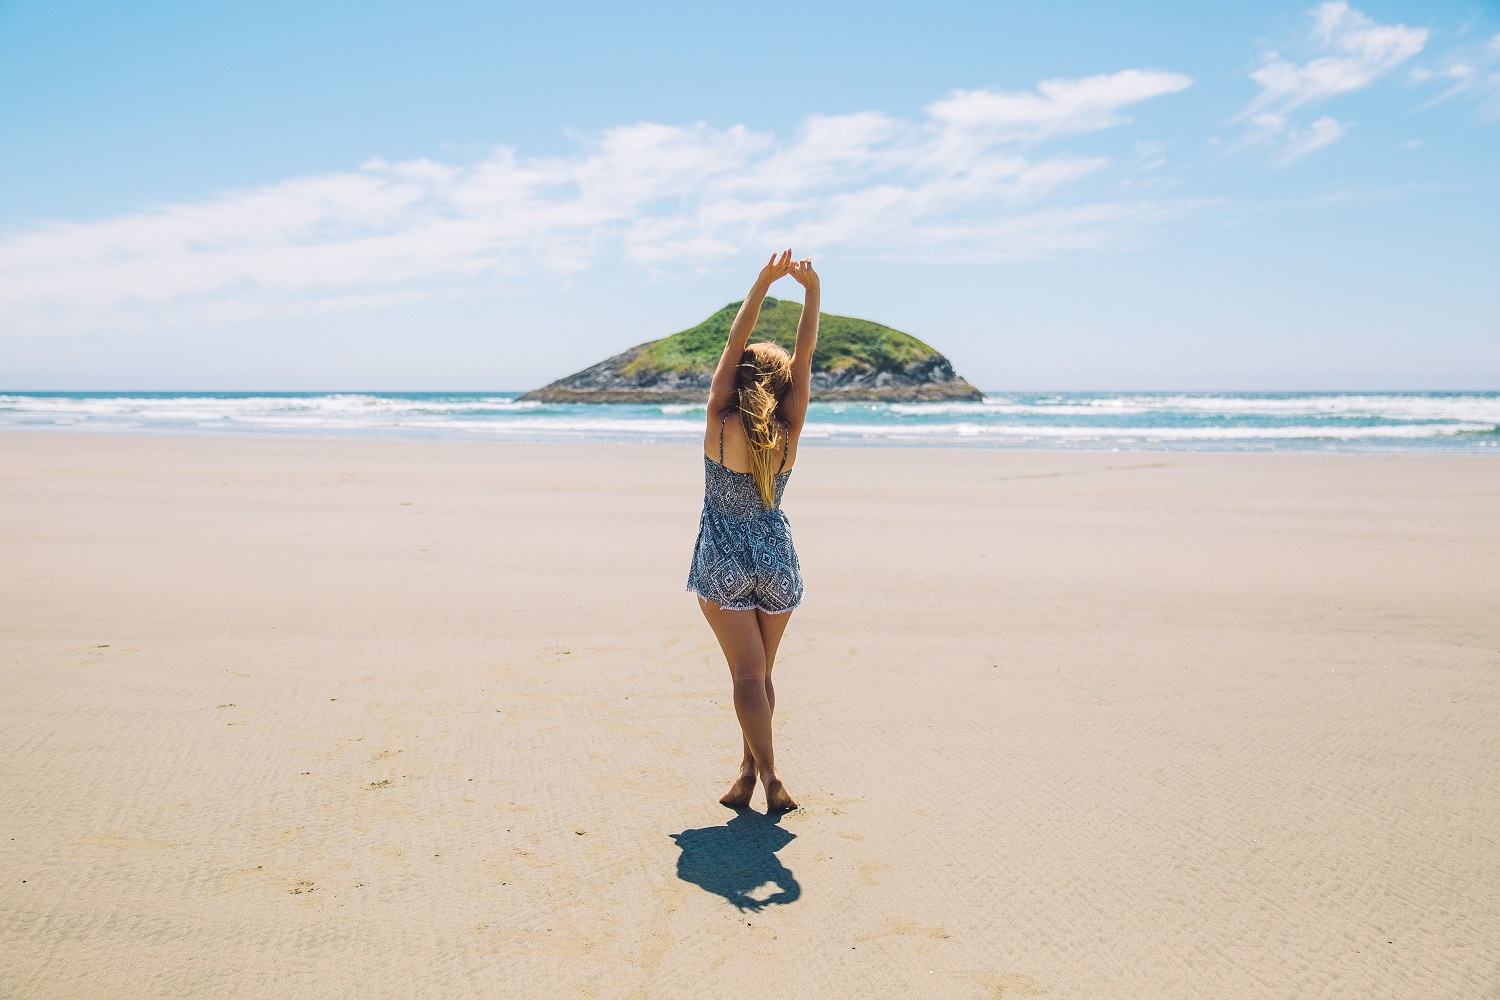 Visit the beach is good for Mental Health